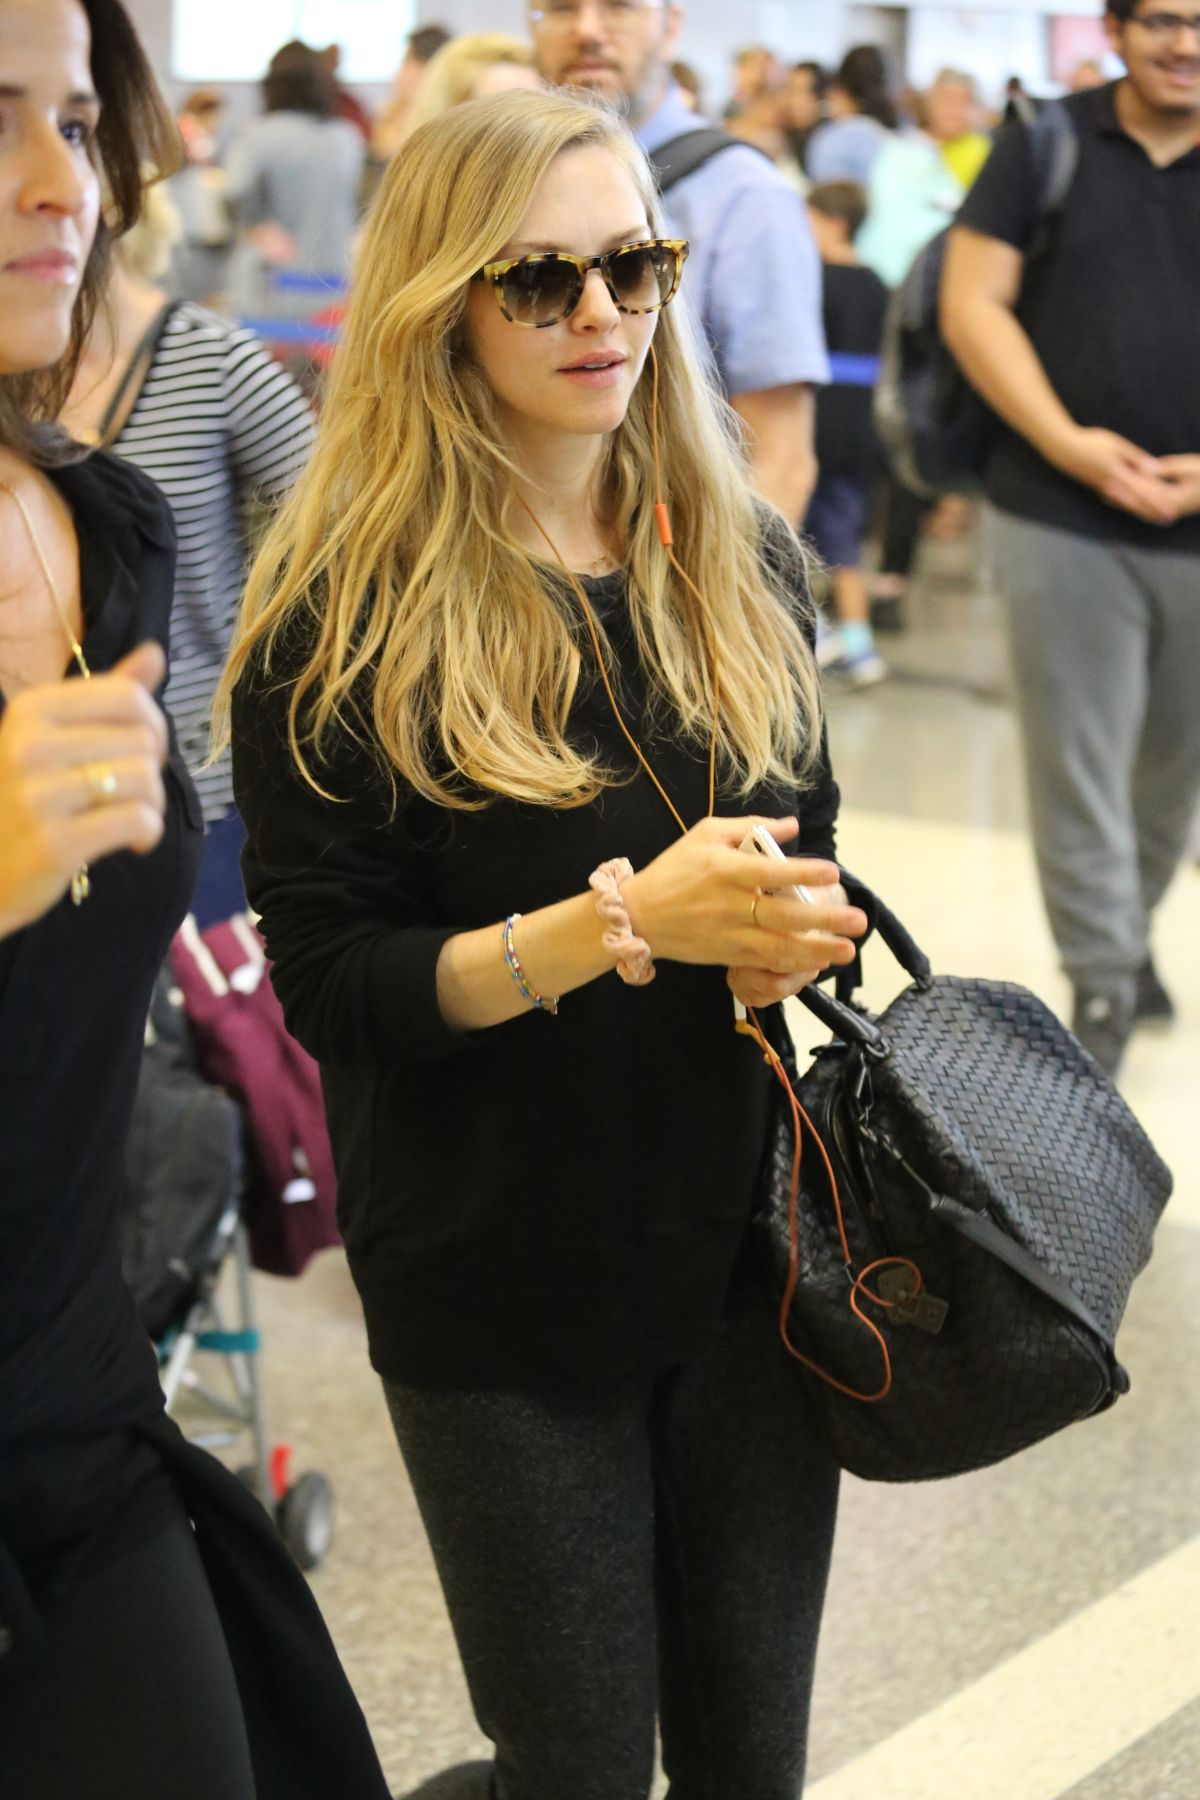 AMANDA SEYFRIED at LAX Airport in Los Angeles 08/29/2017